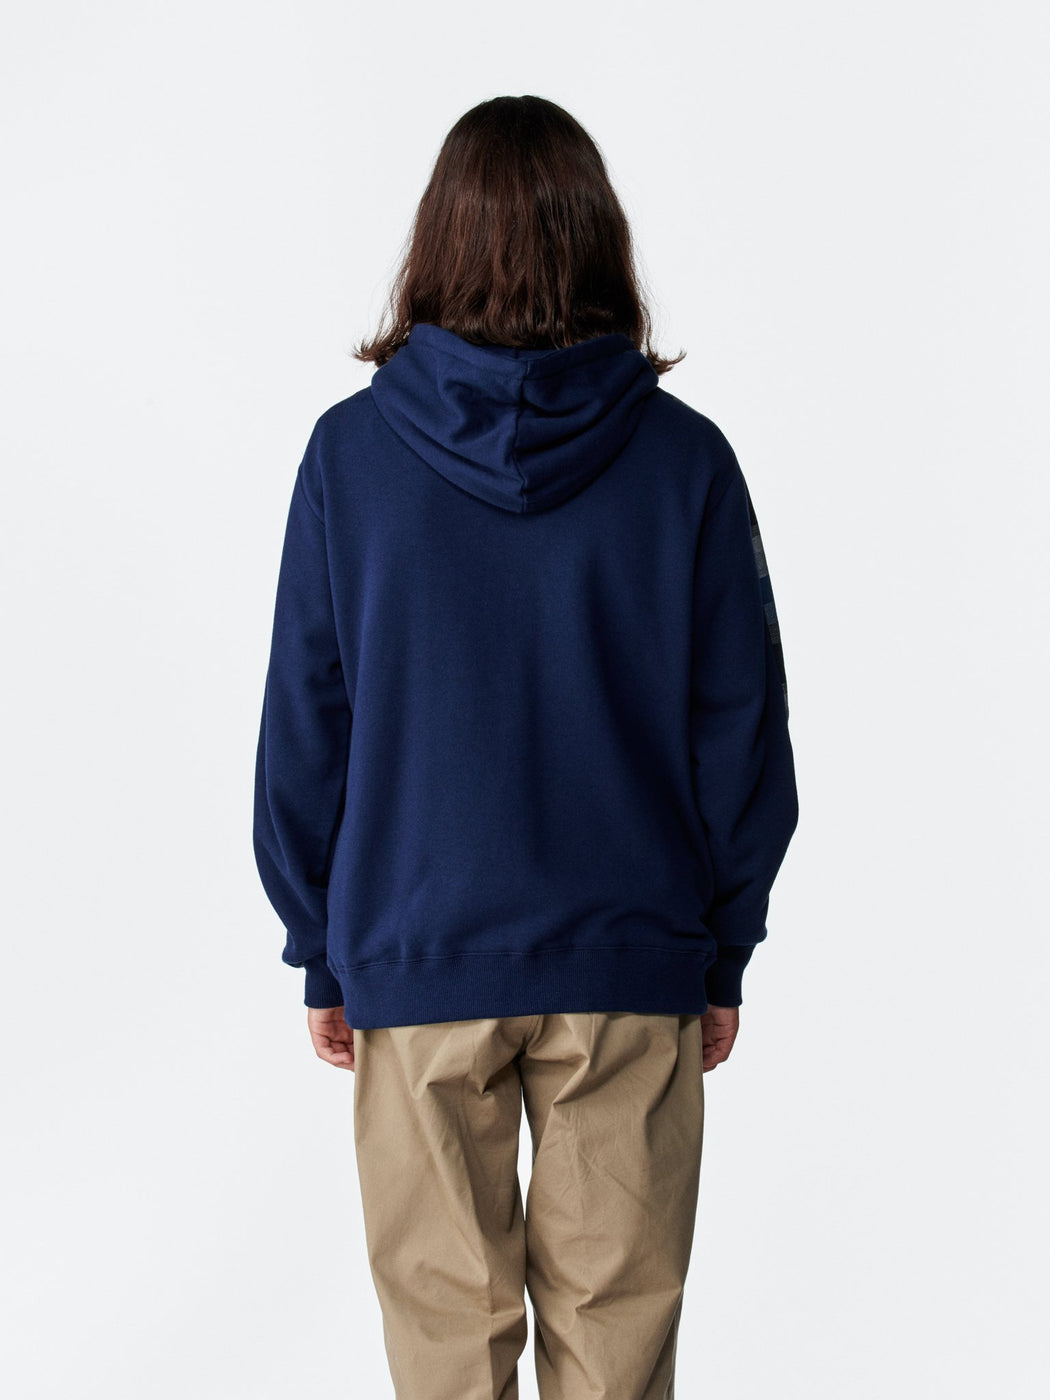 ALOYE Color Block Zip-Up Hoodie Navy-Kamedajima Stripe